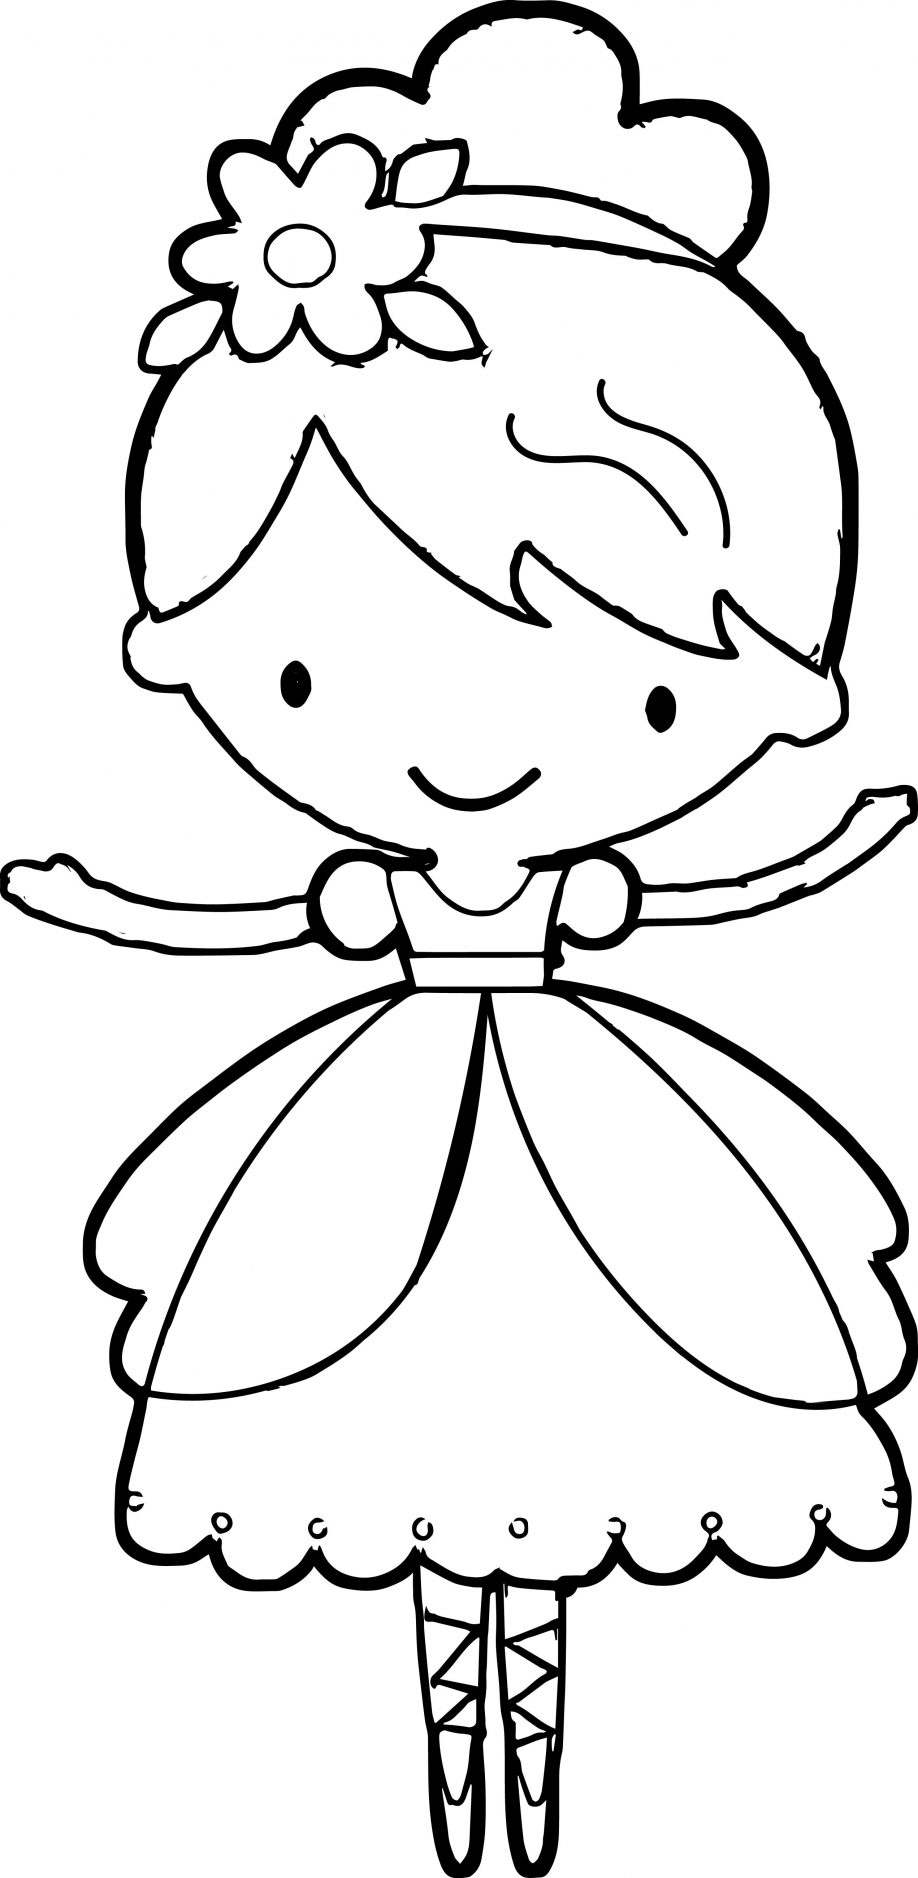 ballet coloring pictures ballet coloring pages to download and print for free coloring pictures ballet